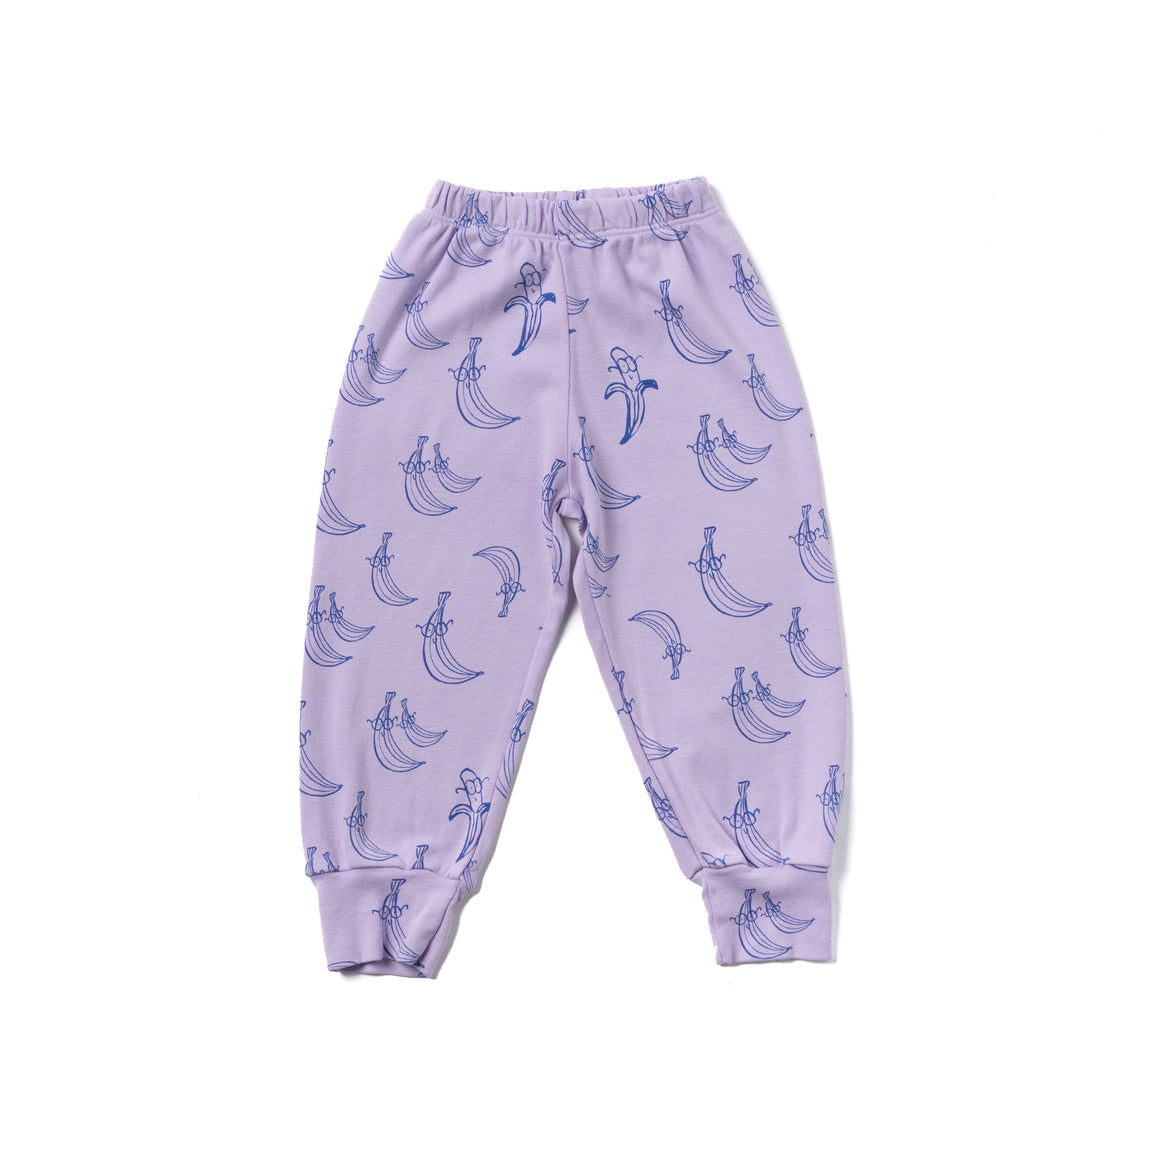 Banana Print Bubble Pants, Pastel Violet